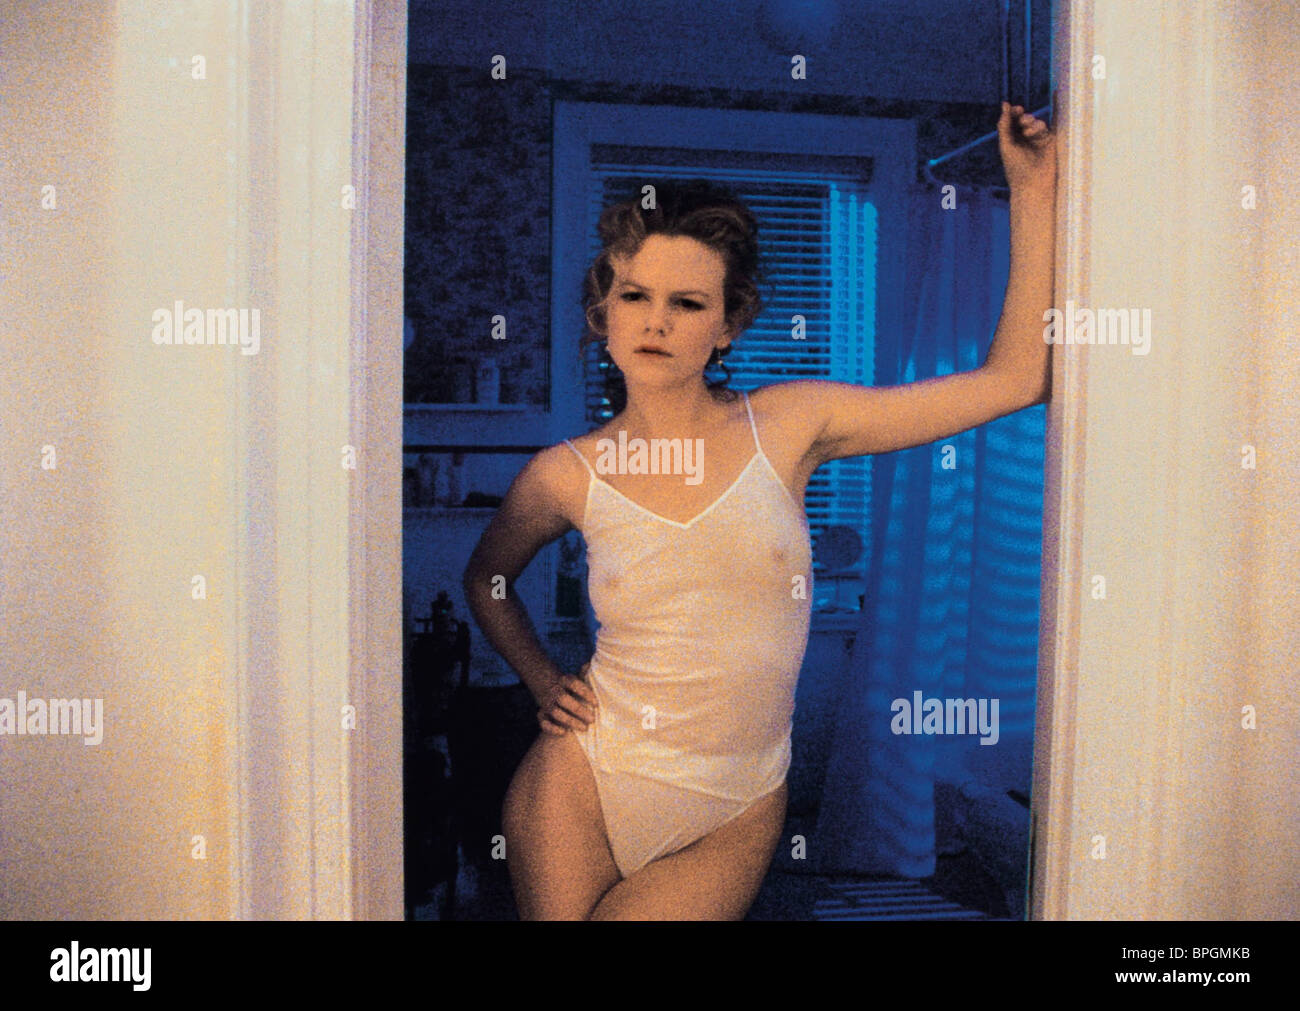 NICOLE KIDMAN EYES WIDE SHUT (1999) - Stock Image